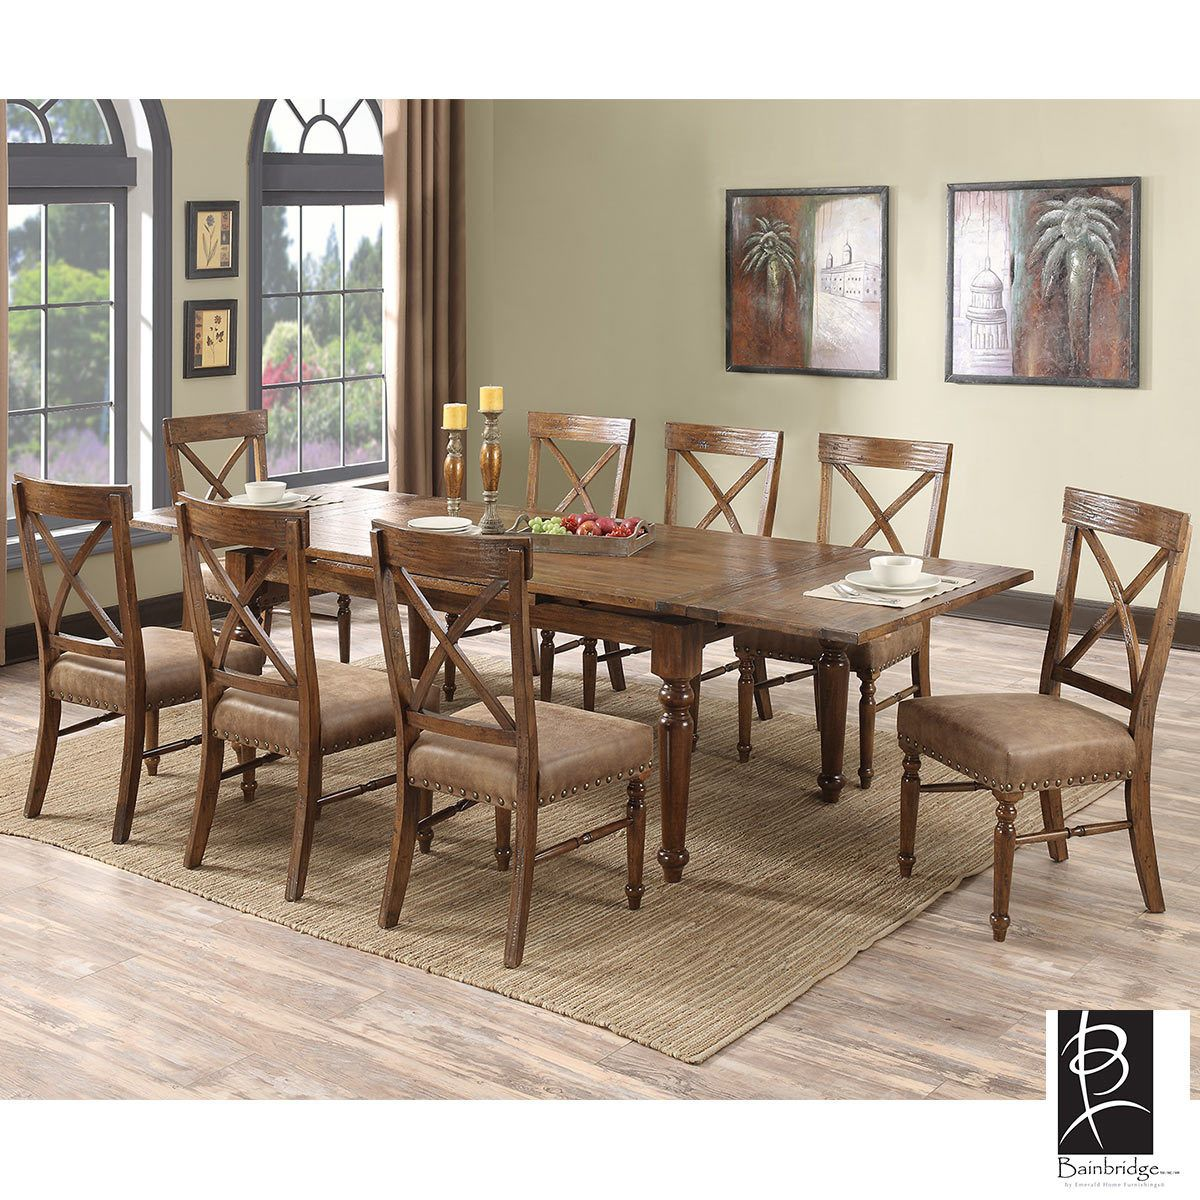 Chattanooga Extending Dining Room Table 8 Chairs Costco Uk Beautiful Dining Room Table Beautiful Dining Rooms Dining Room Table